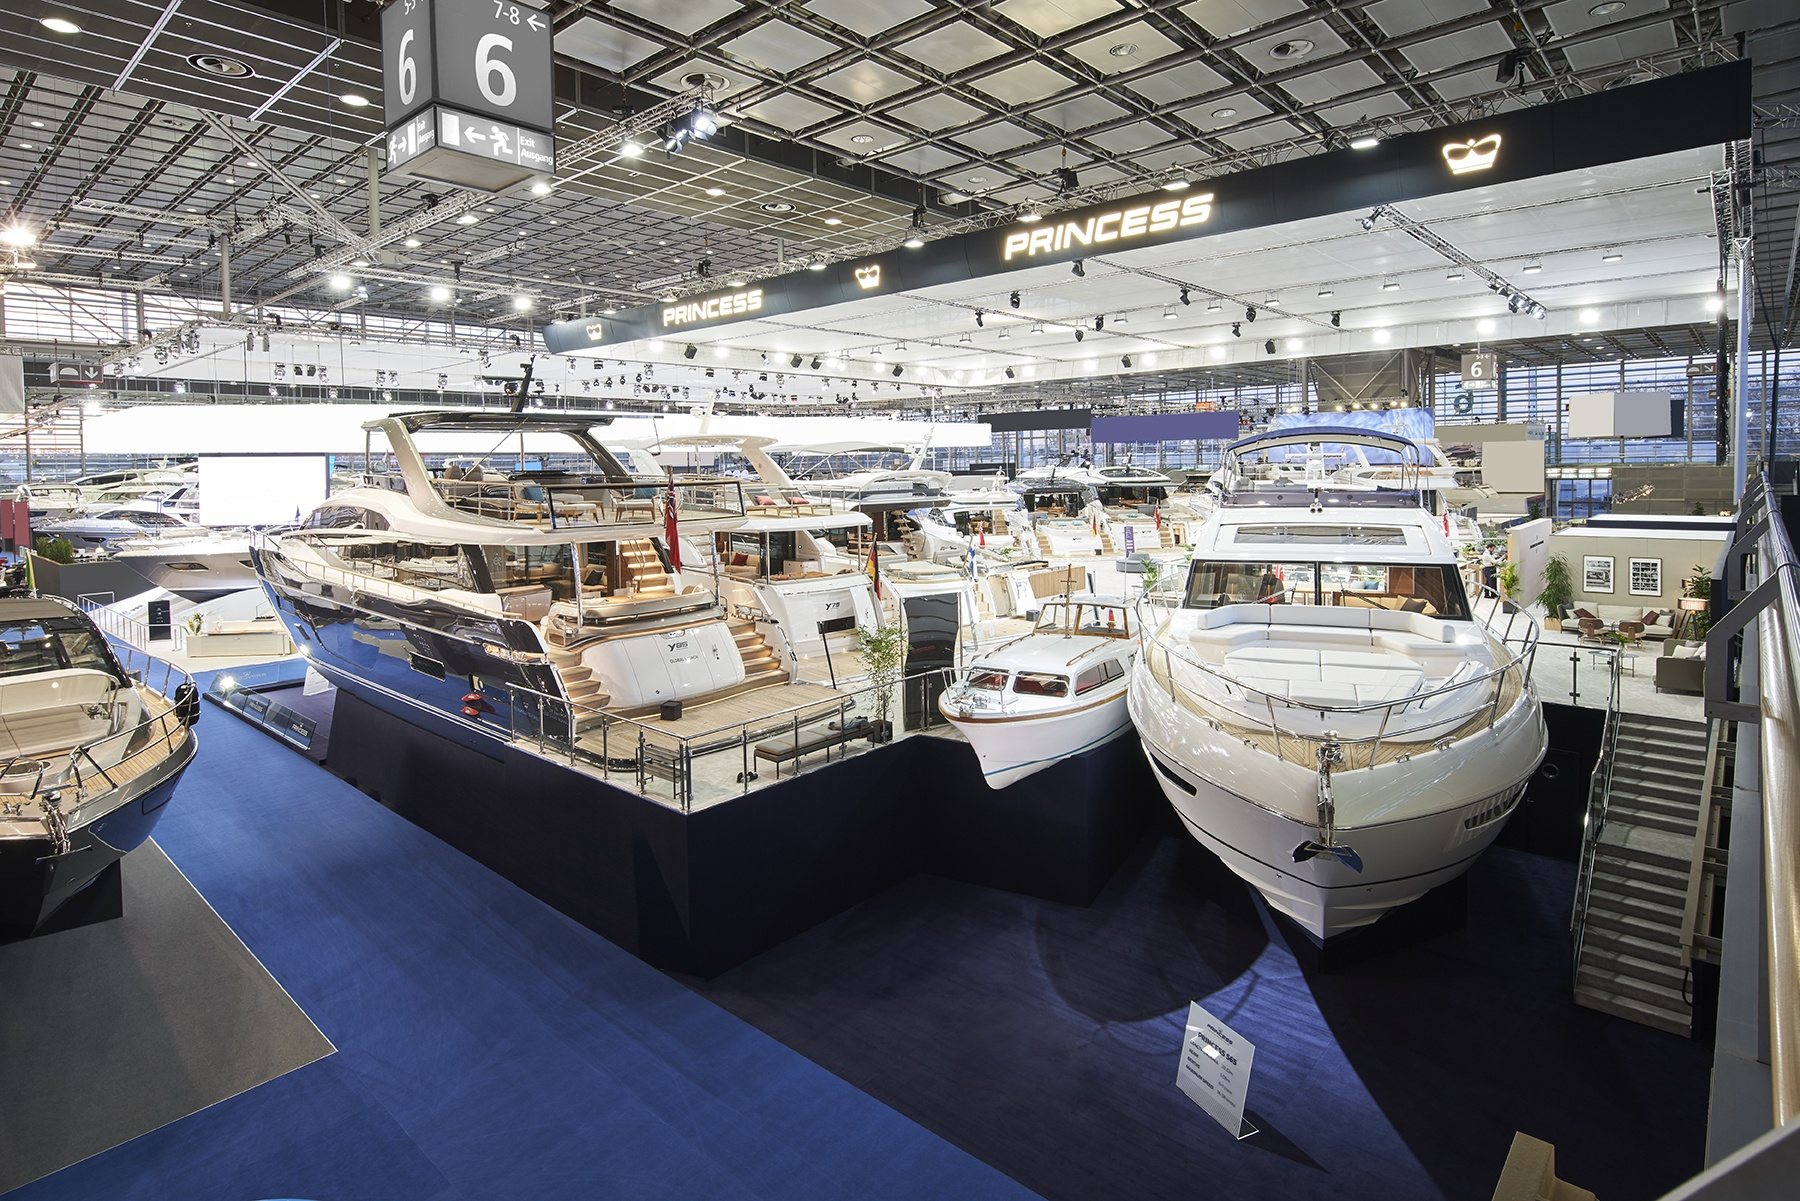 Princess Yachts Starts 2019 With Strong Sales At Boot Dusseldorf